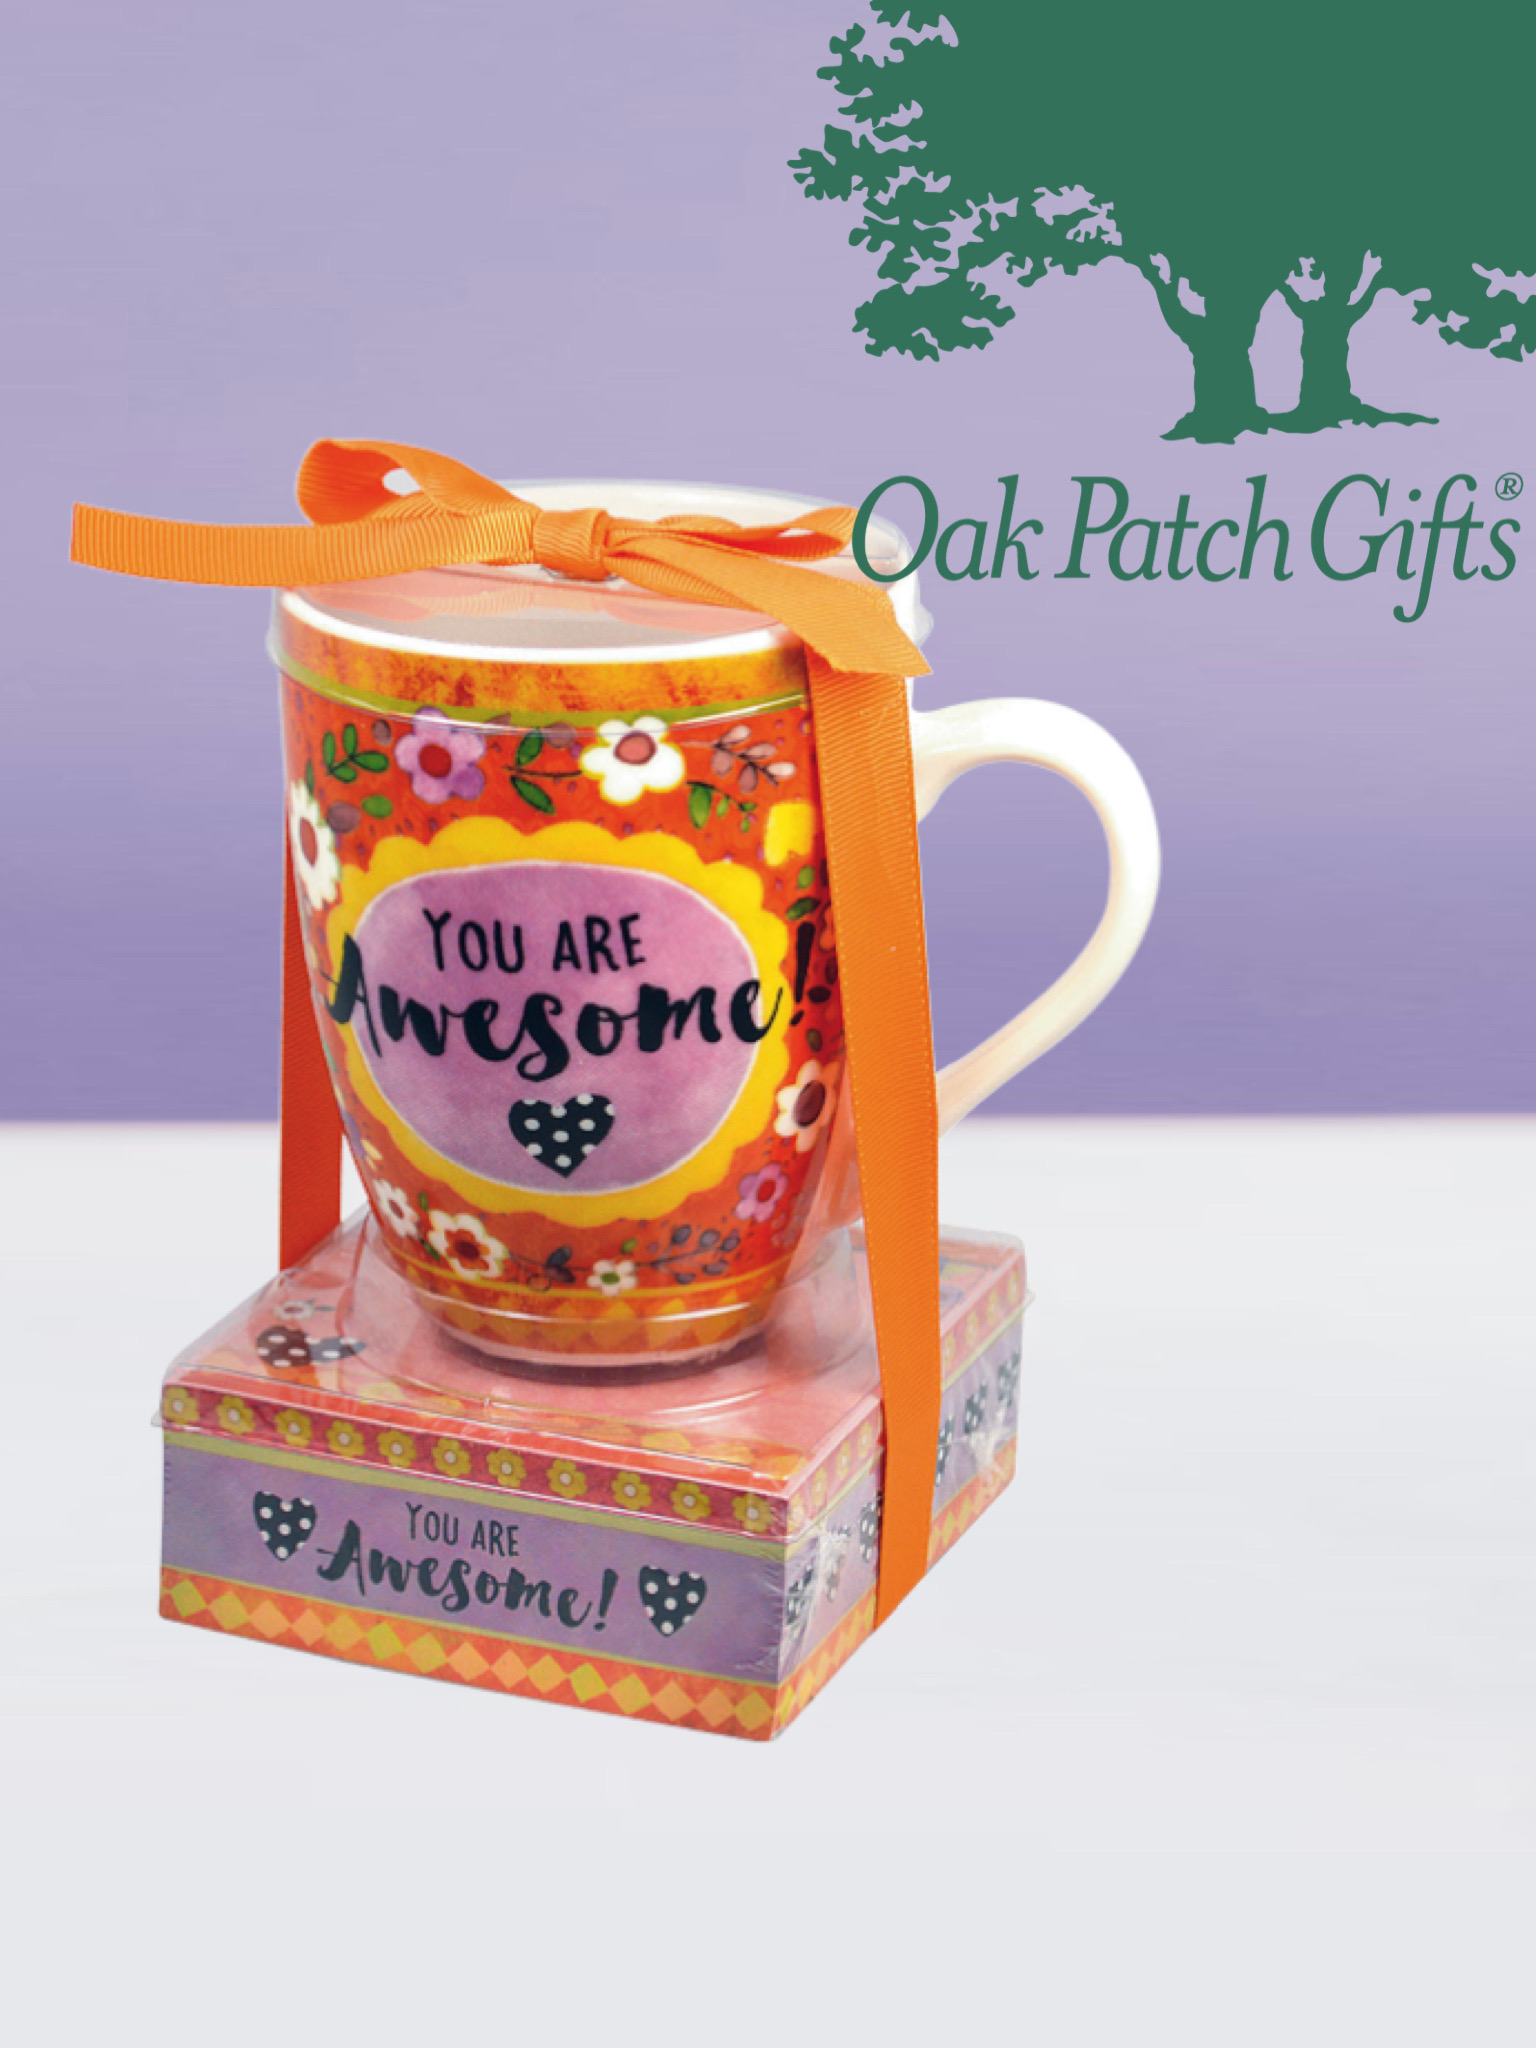 Oak Patch Gifts